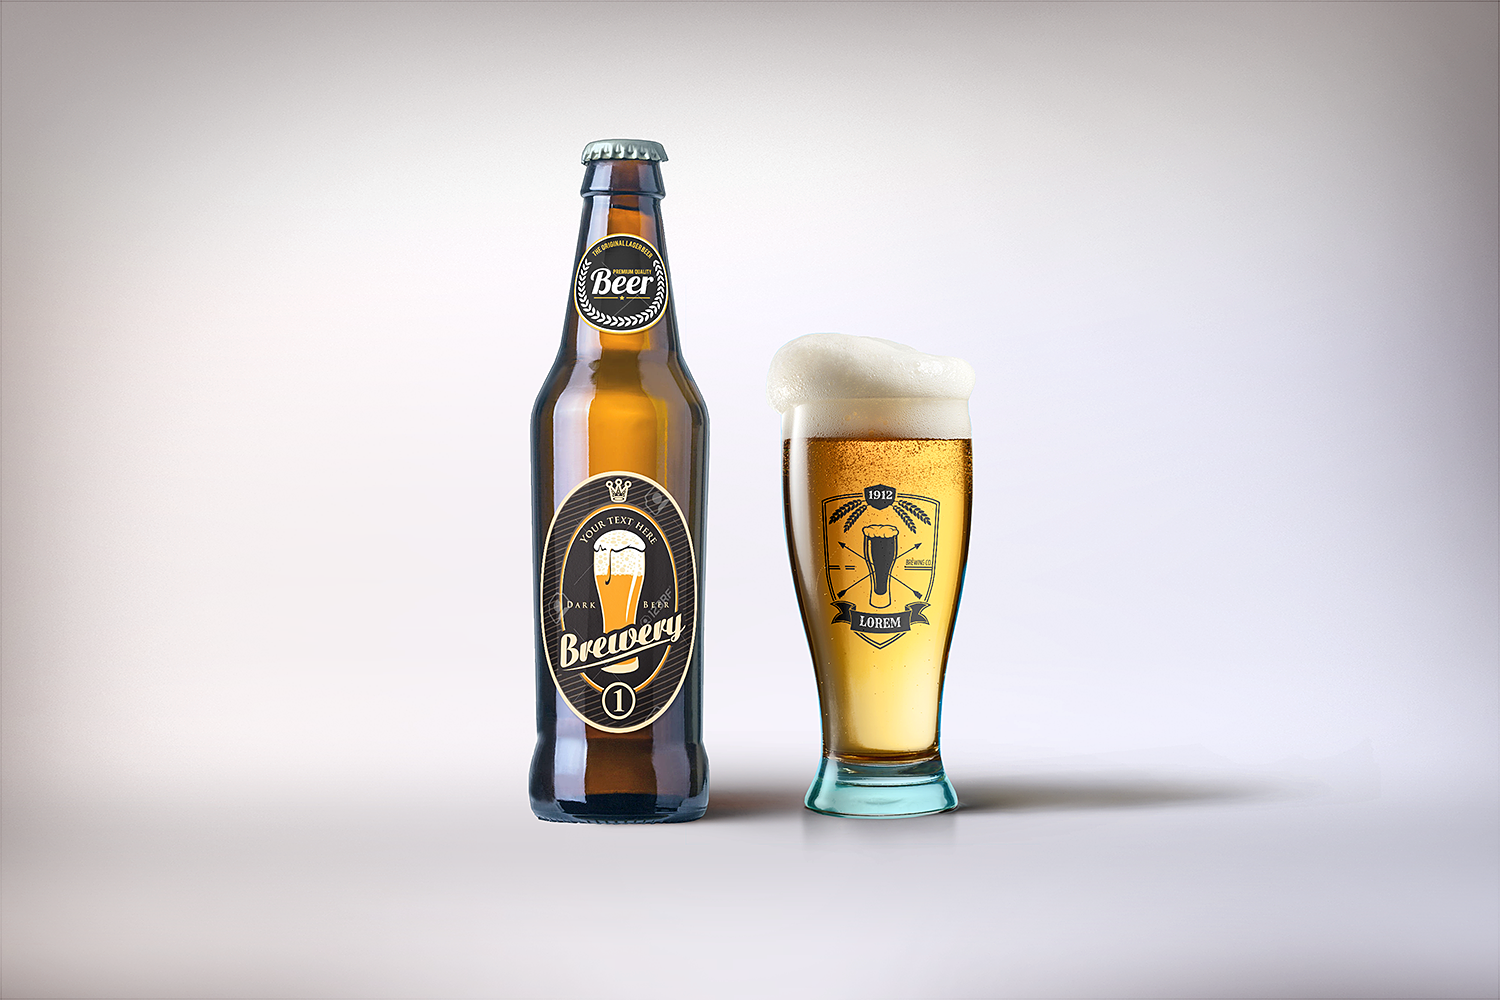 Beer Bottle and Glass Mockup Free PSD